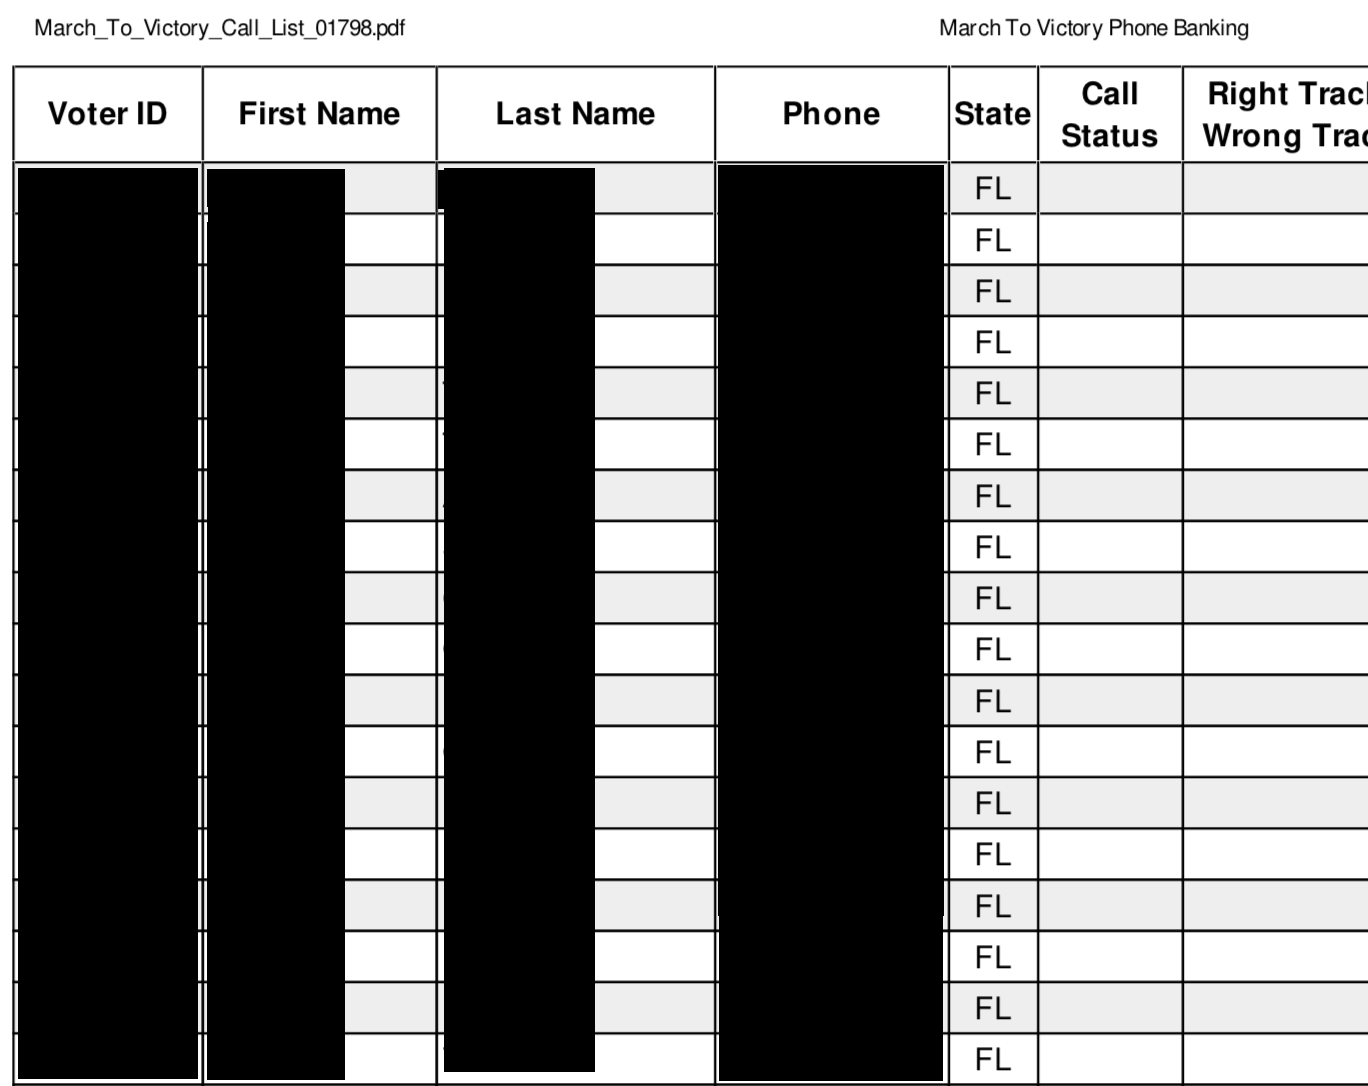 Redacted screenshot of a TPPCF March to Victory Call List